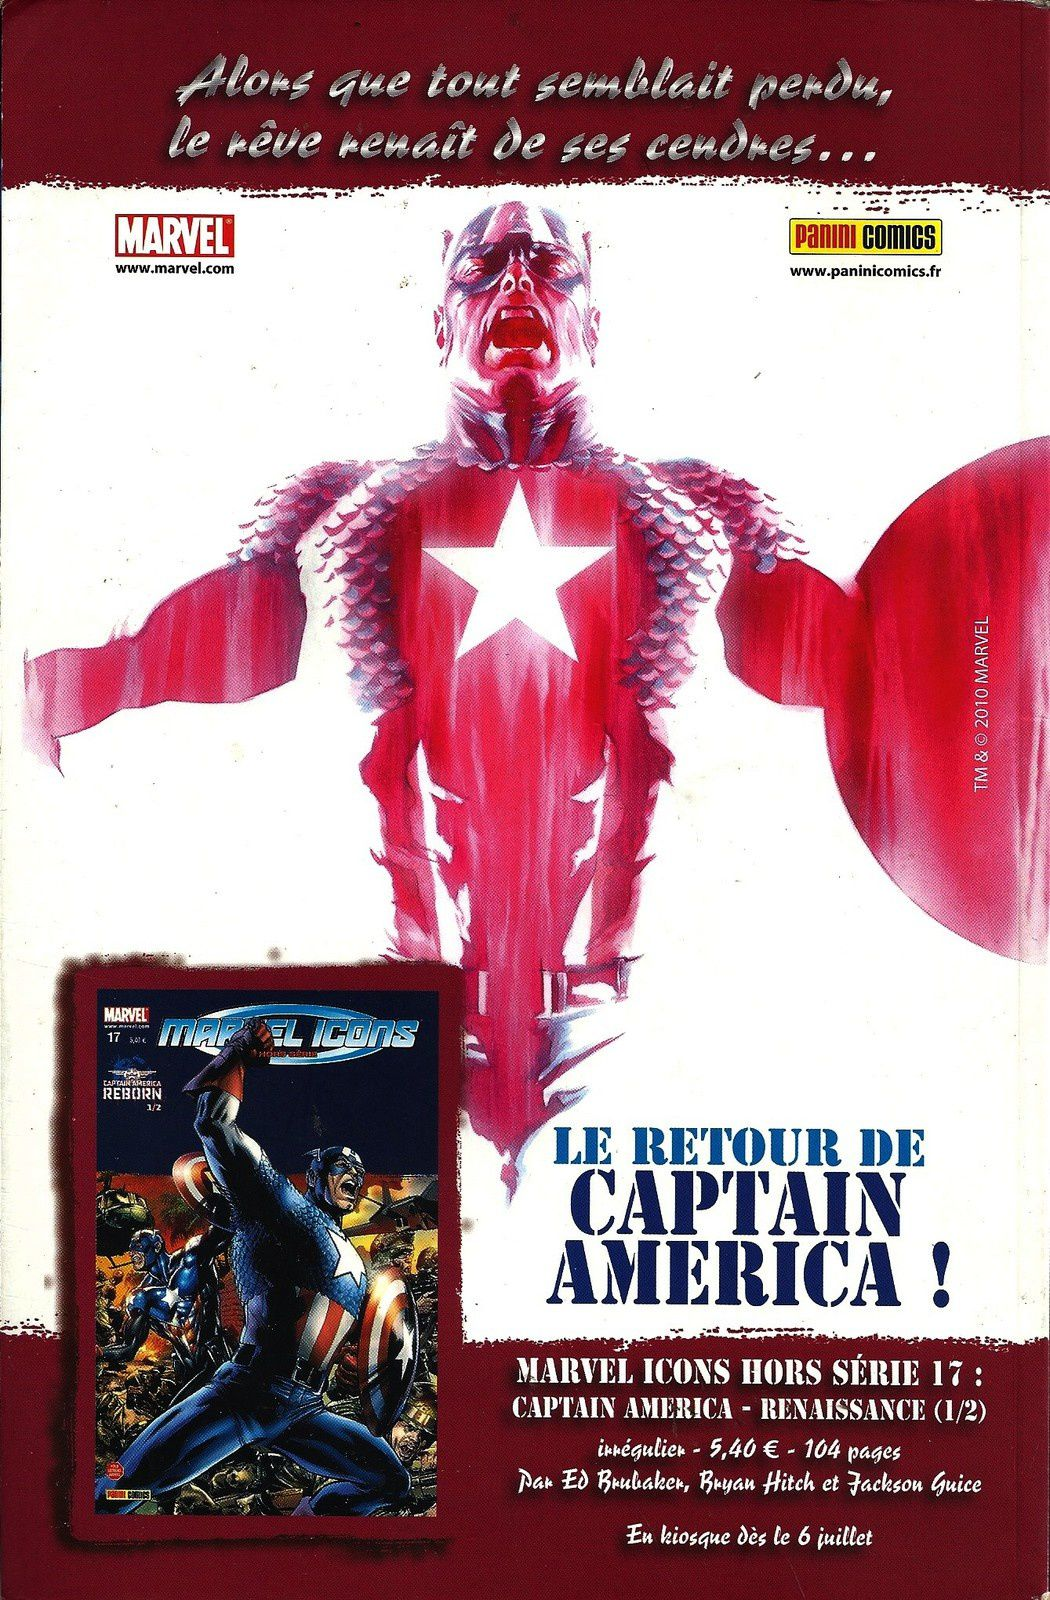 Marvel France, Panini Comics